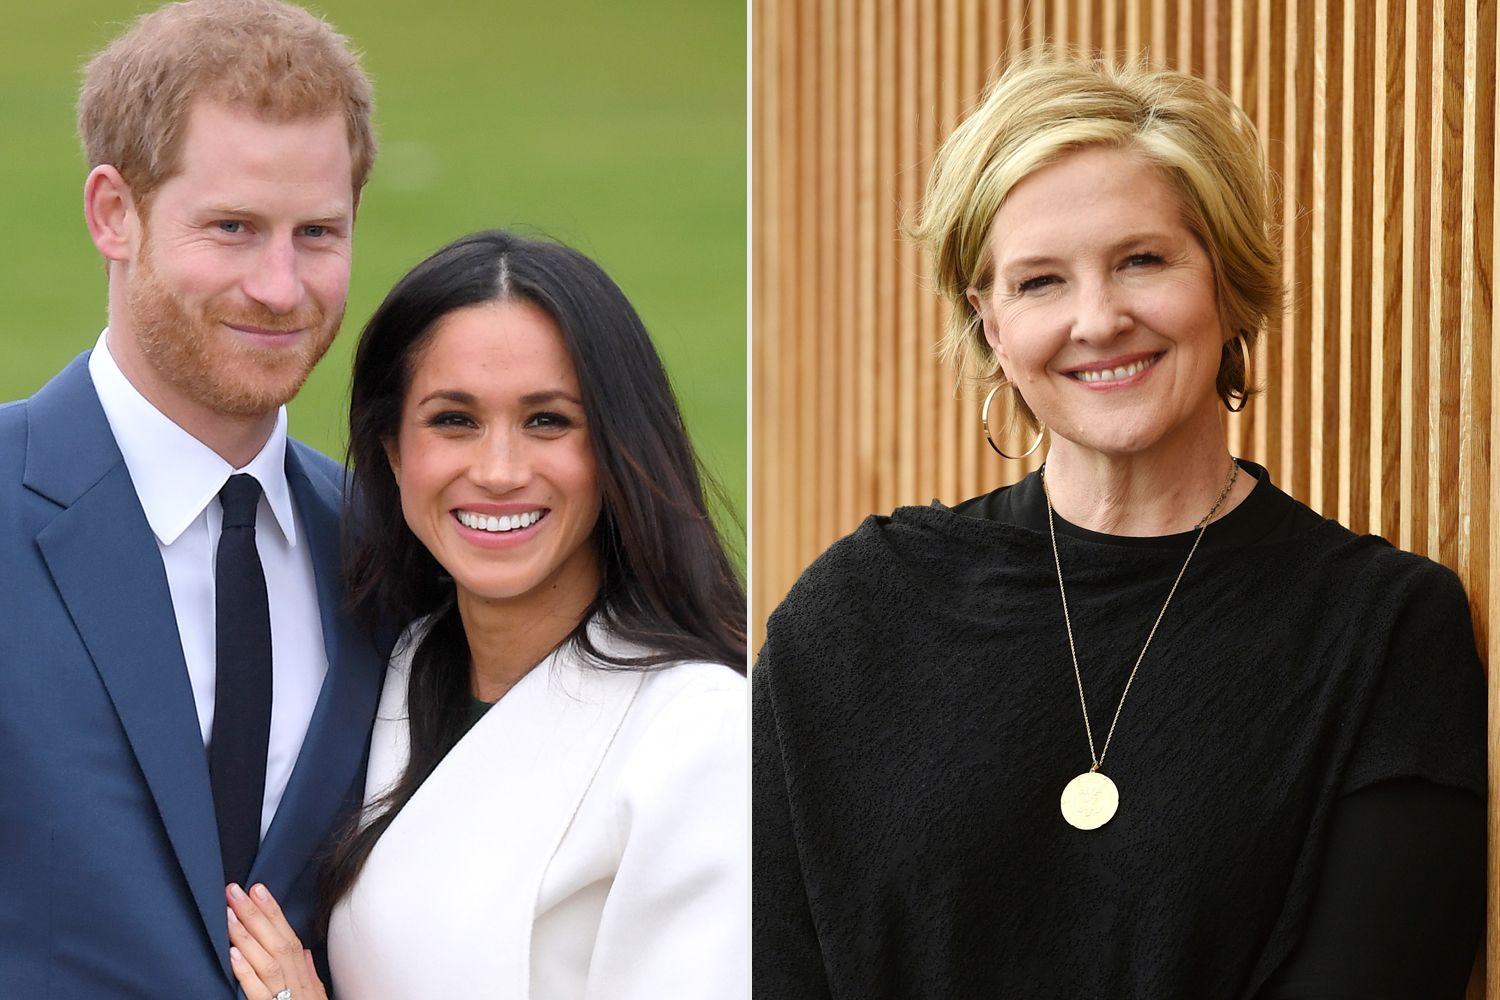 Meghan Markle And Prince Harry Say They Absolutely Adore Self Help Guru Brene Brown Prince Harry Meghan Markle Prince Harry Meghan Markle